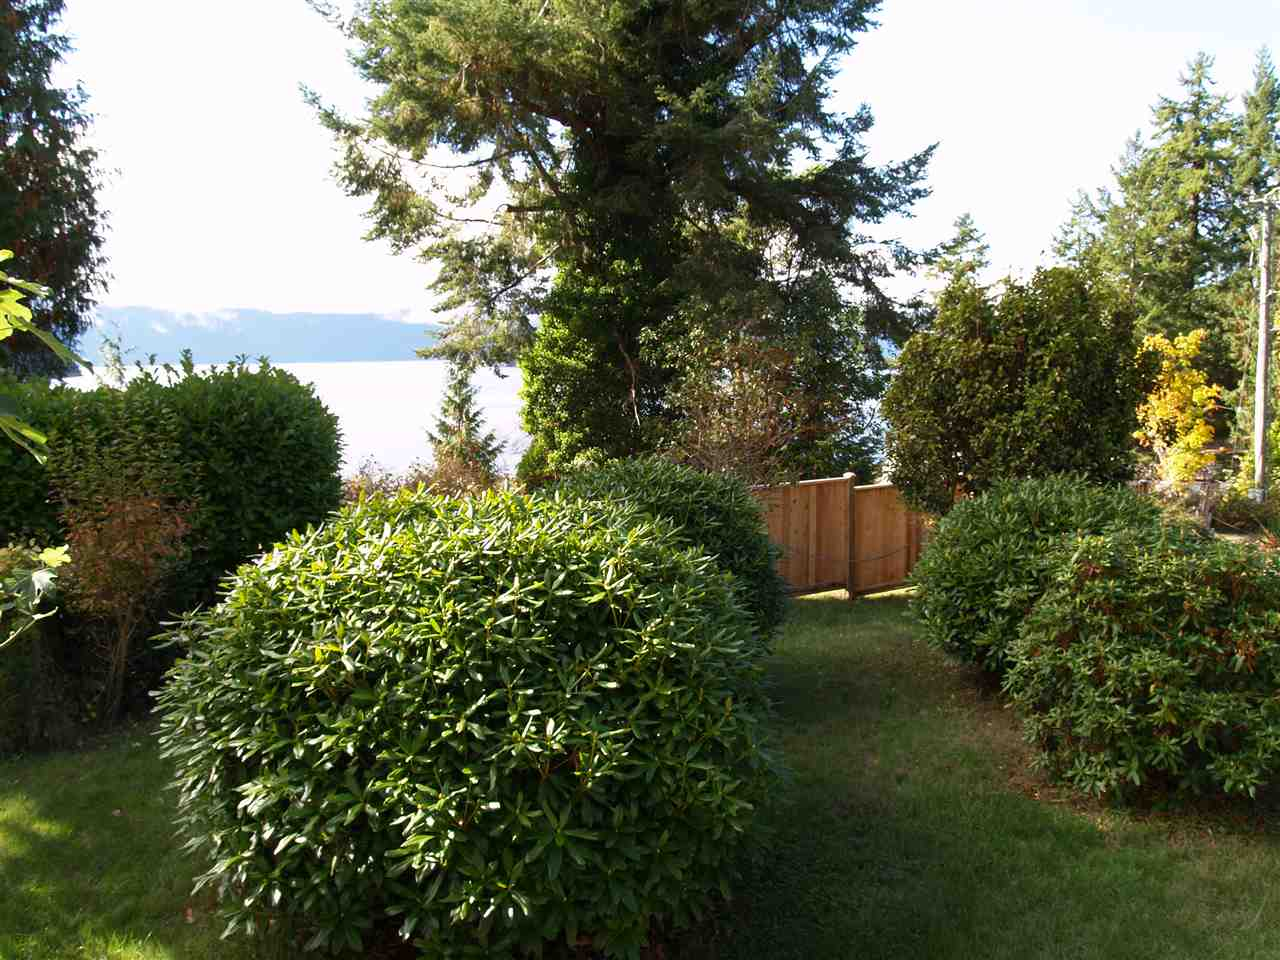 Photo 4: Photos: 4175 IRVINES LANDING Road in Garden Bay: Pender Harbour Egmont House for sale (Sunshine Coast)  : MLS®# R2213995